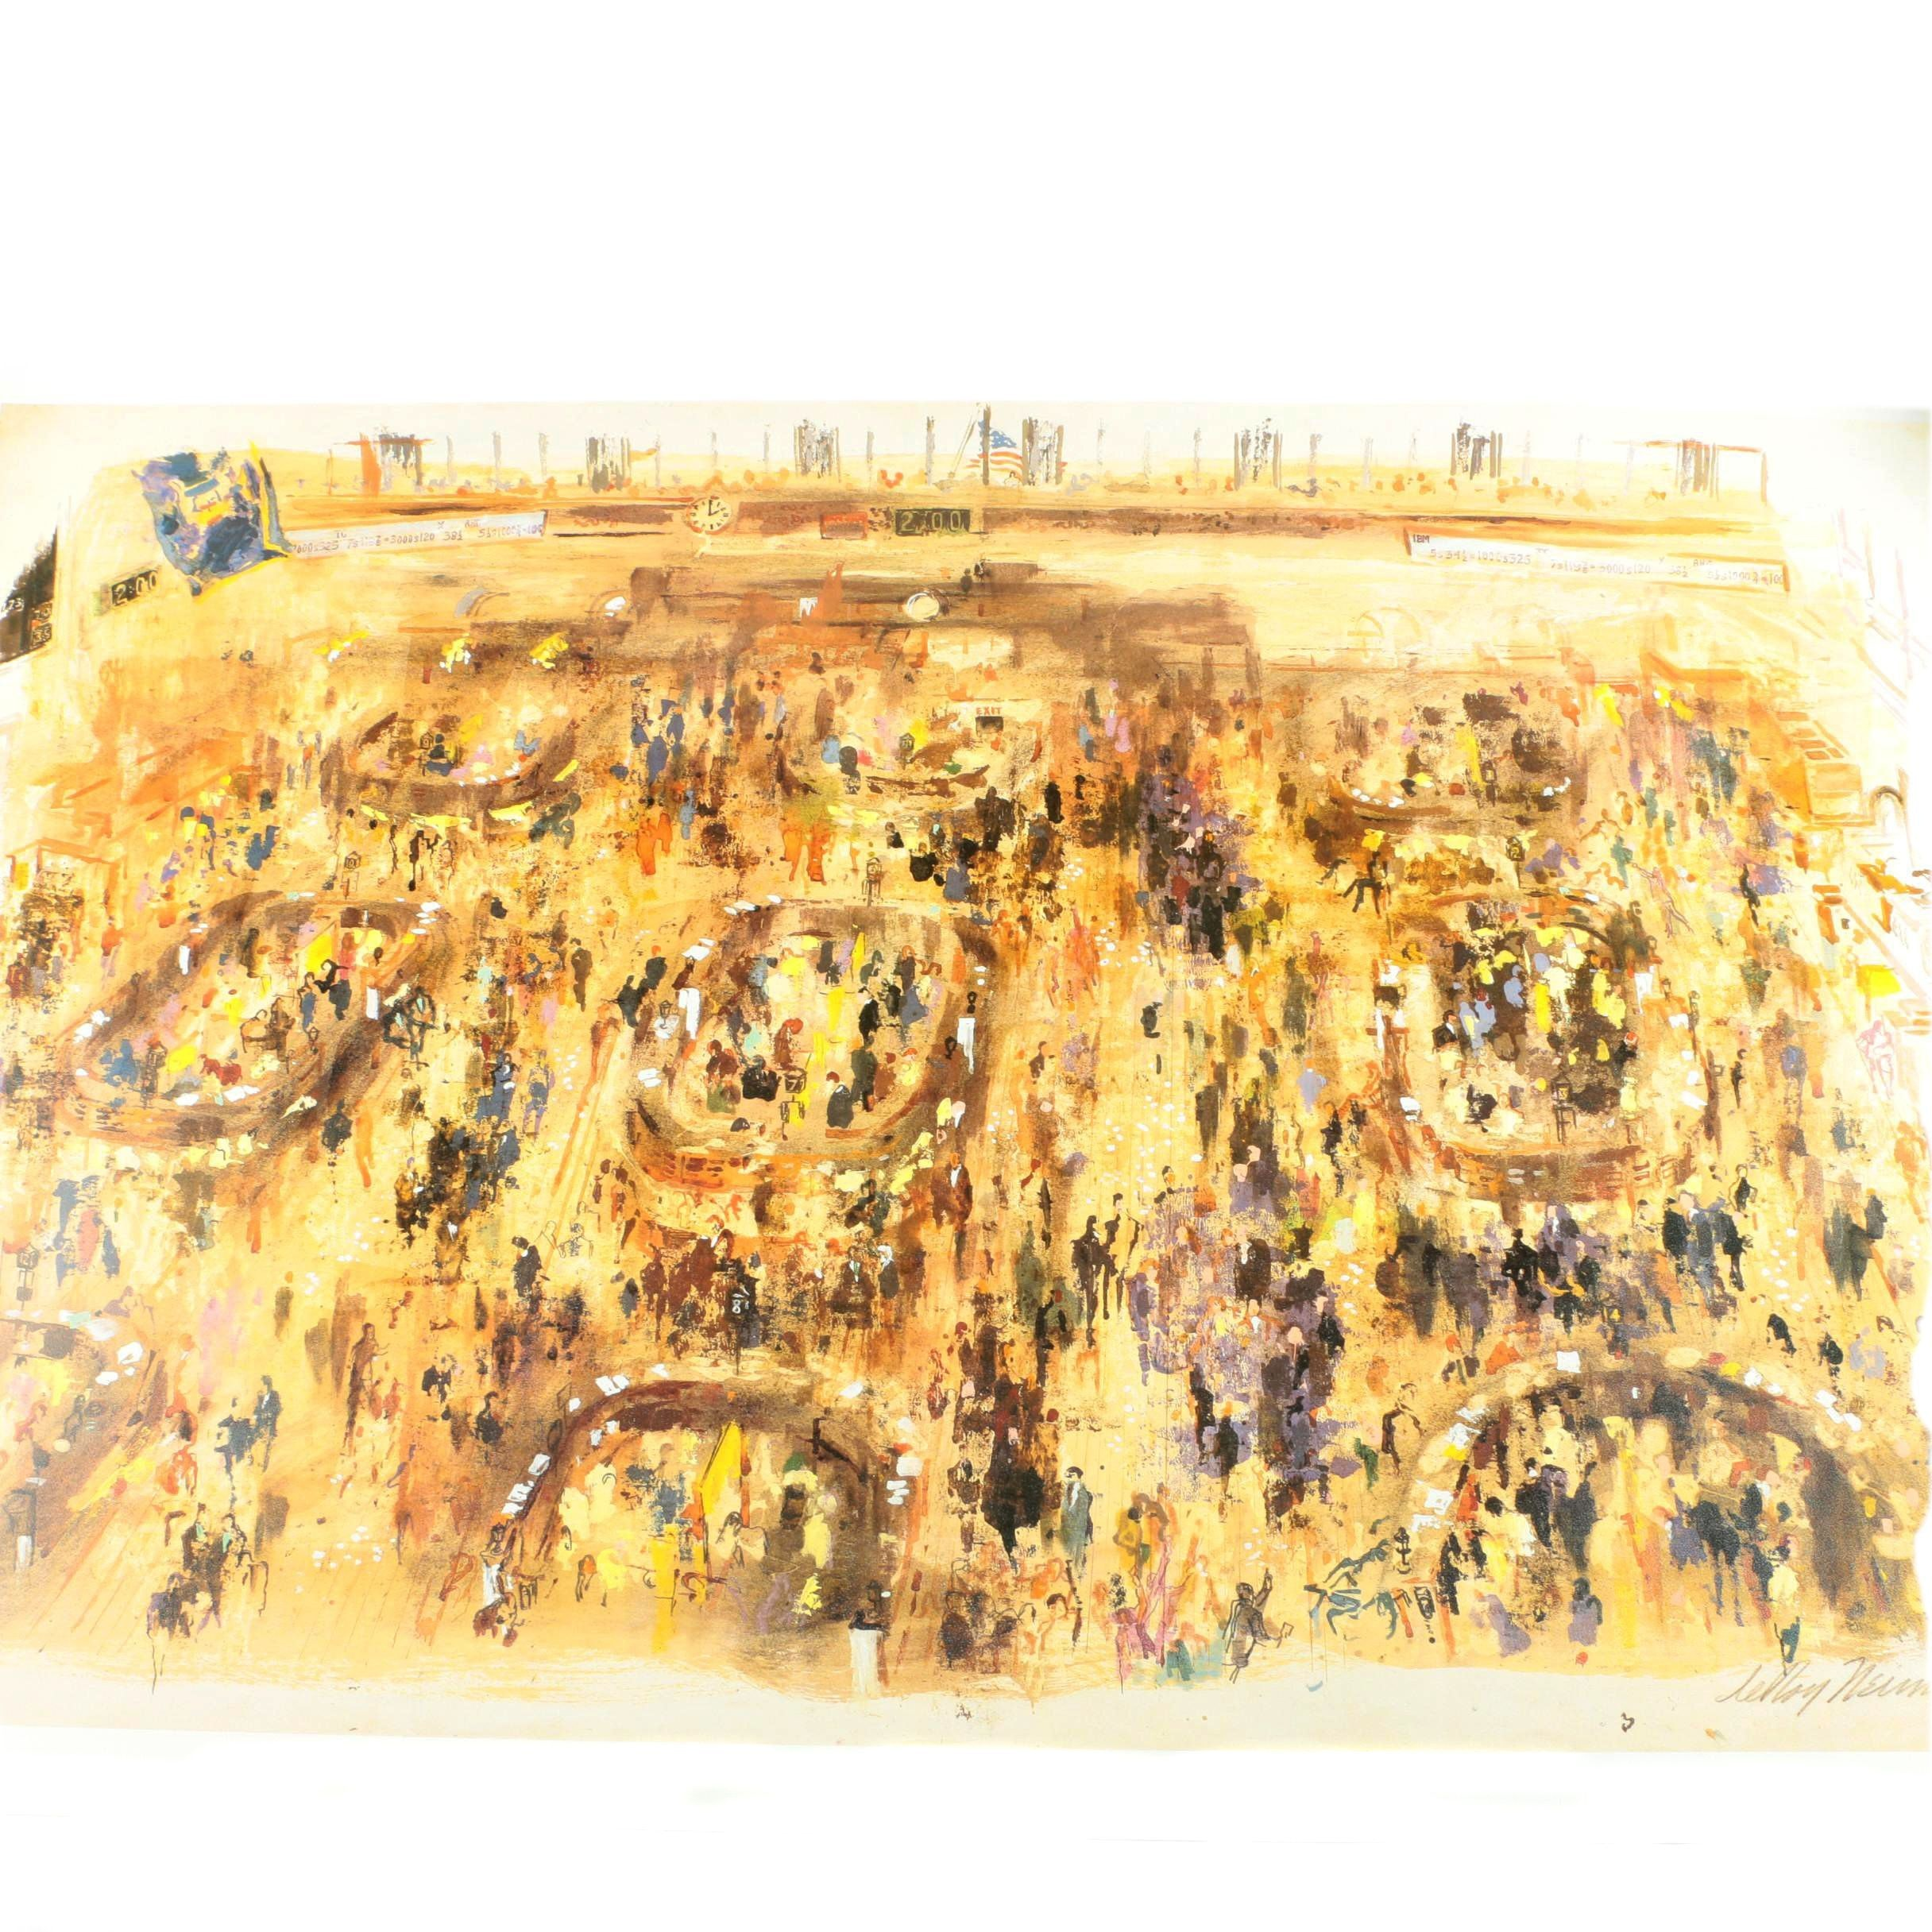 "Reproduction Print After LeRoy Neiman's ""New York Stock Exchange"""